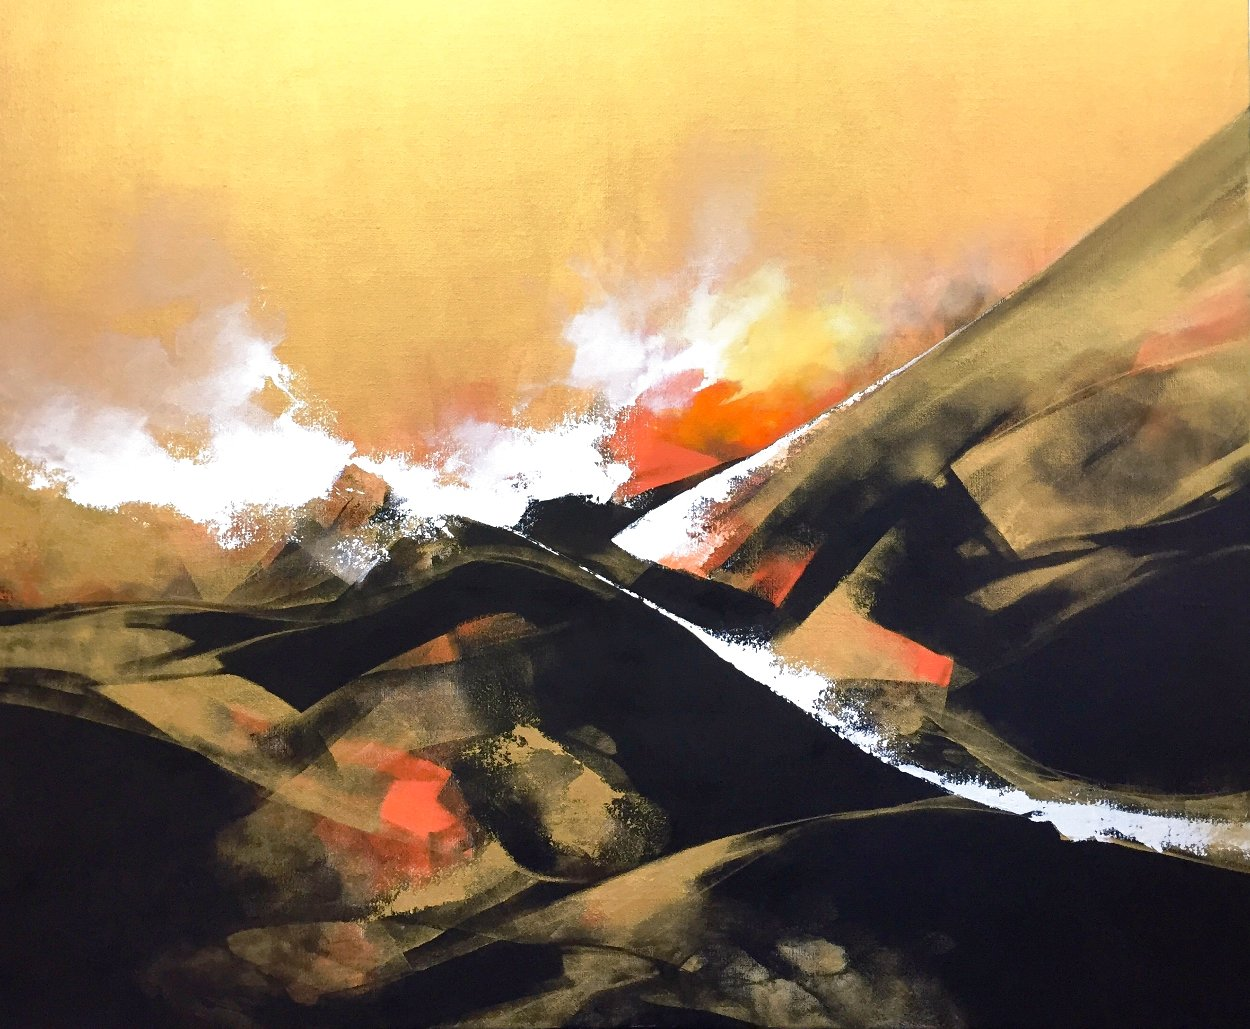 Golden Time 2014 59x70 Super Huge Original Painting by Thomas Leung